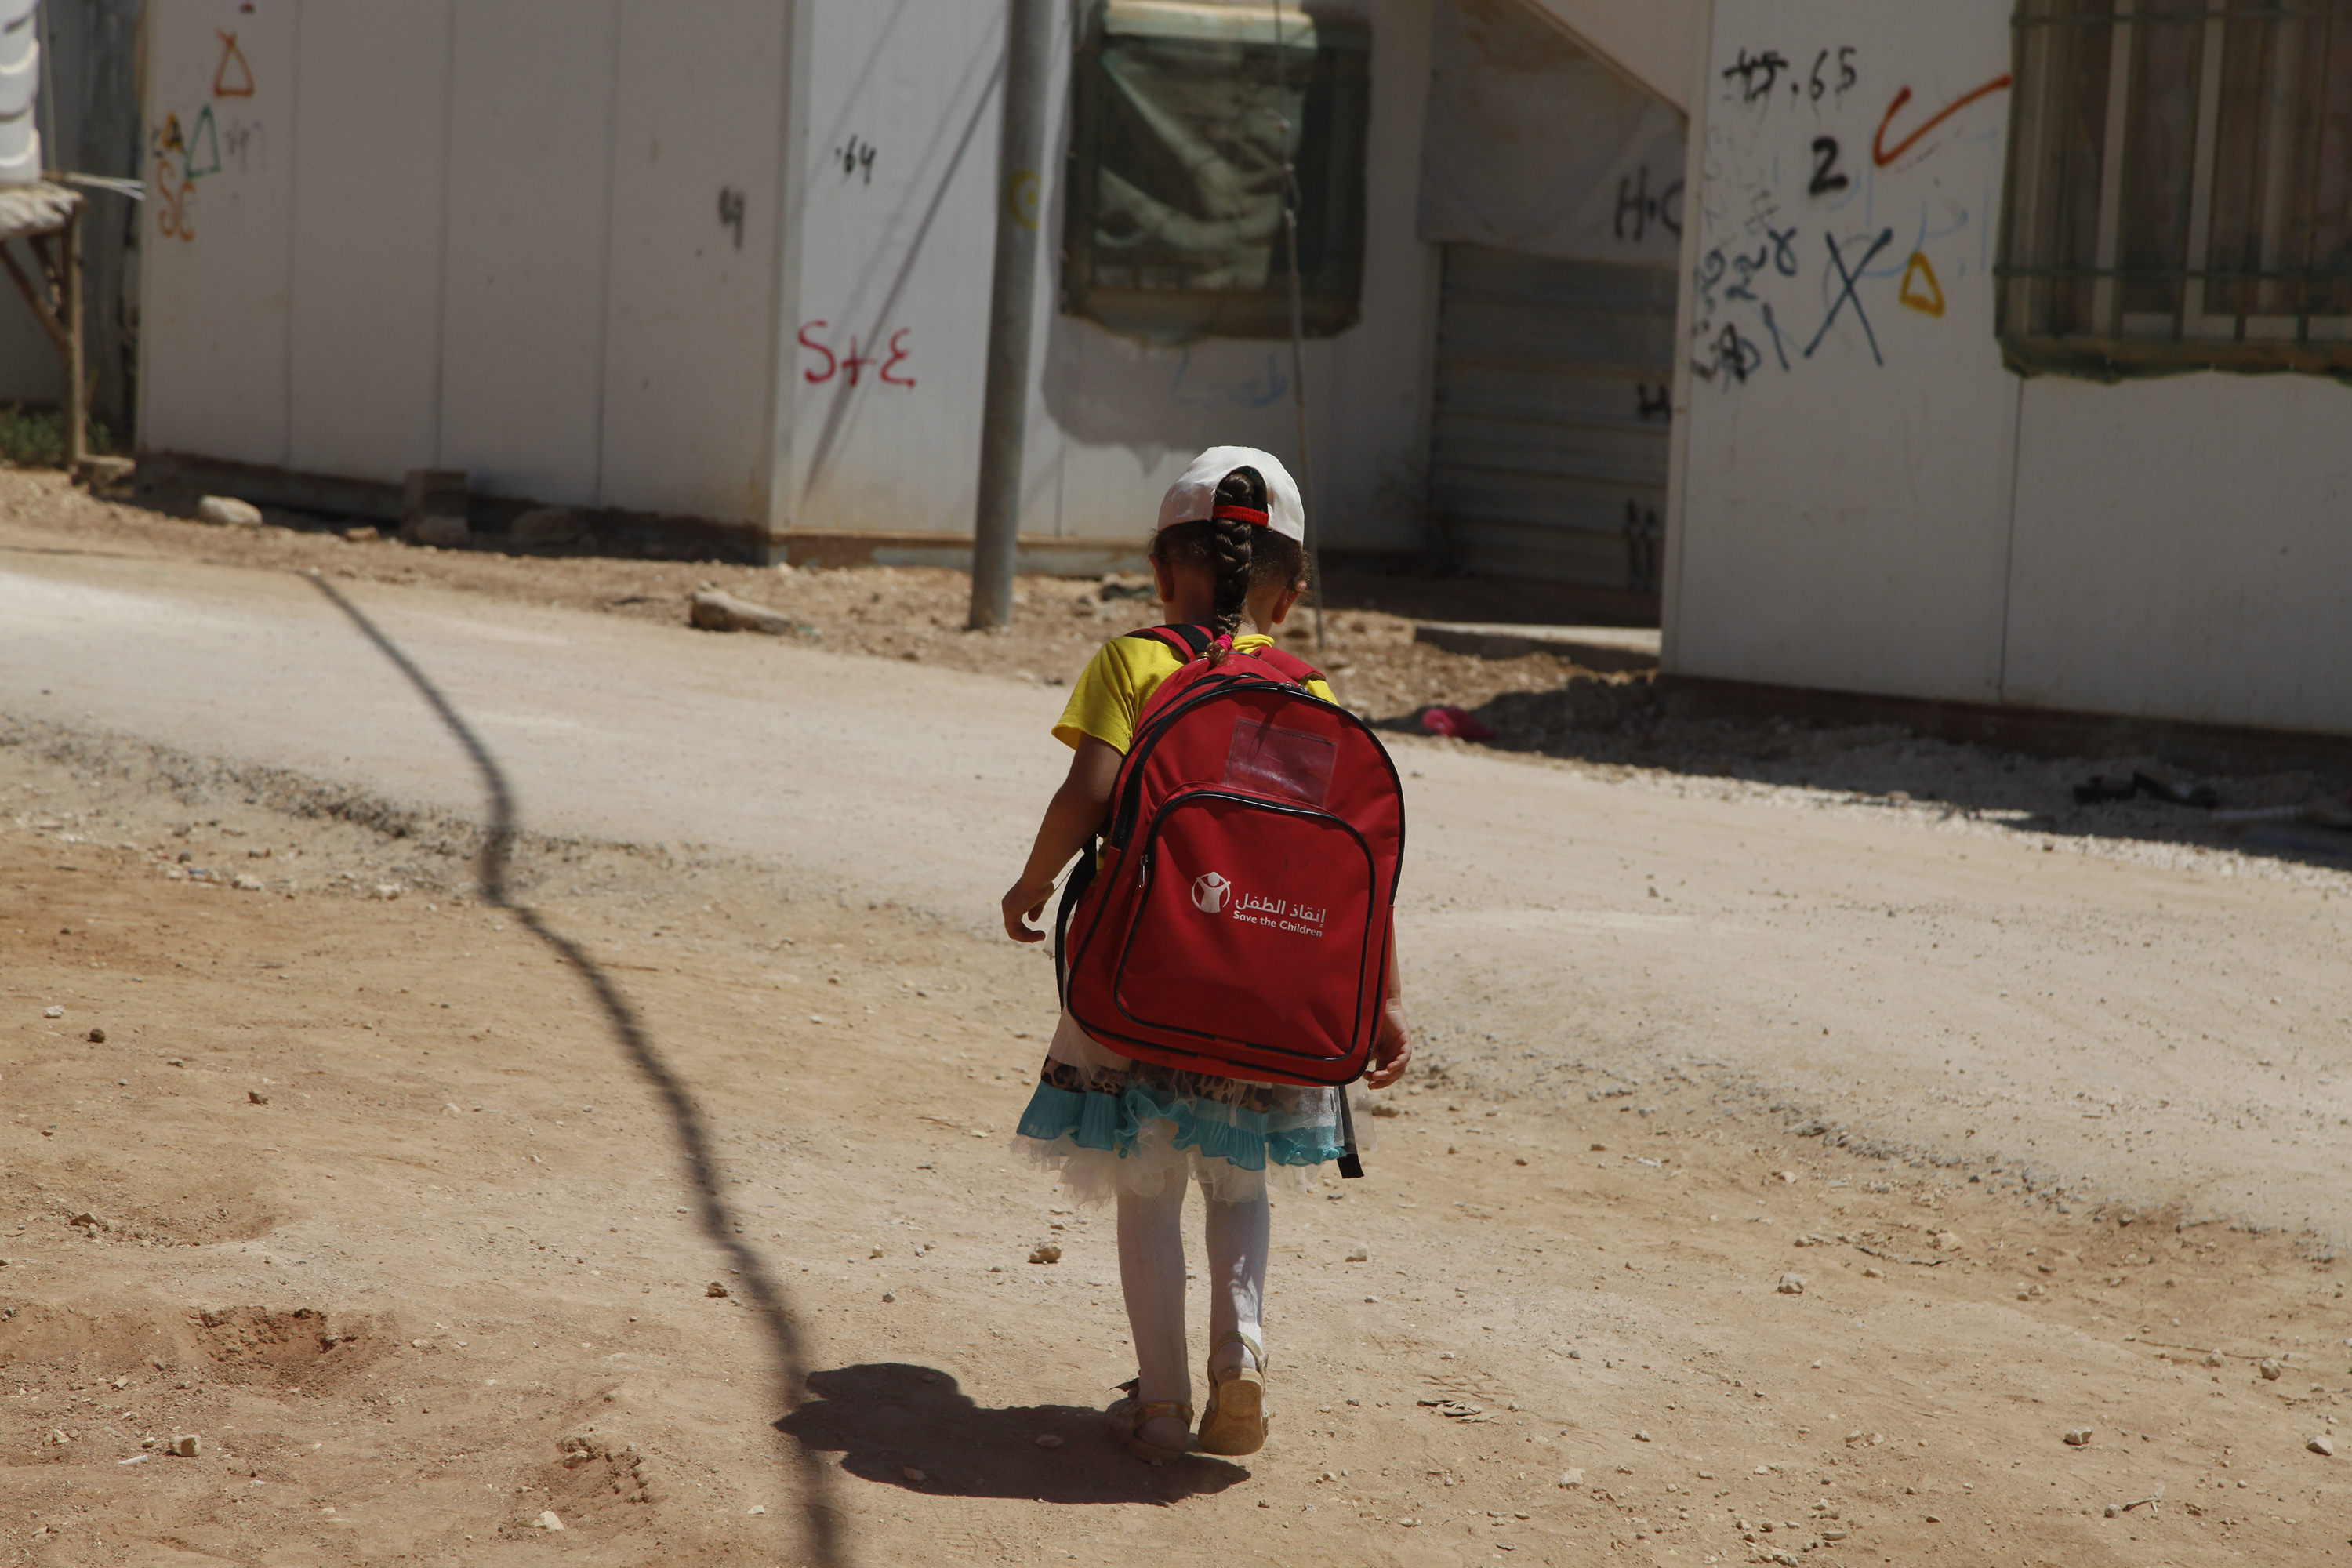 "In this Monday, Aug. 6, 2017 photo, a girl walks to school in the Zaatari Refugee Camp for Syrian refugees, in northern Jordan. More than half a million Syrian refugee children in regional host countries - Jordan, Lebanon, Turkey, Egypt and Iraq - aren't in school despite an ambitious ""no lost generation"" pledge made by donor countries at a Syria aid conference last year. The U.N. child welfare agency is trying to enroll more children in schools, but faces large funding gaps. (AP Photo/Reem Saad)"